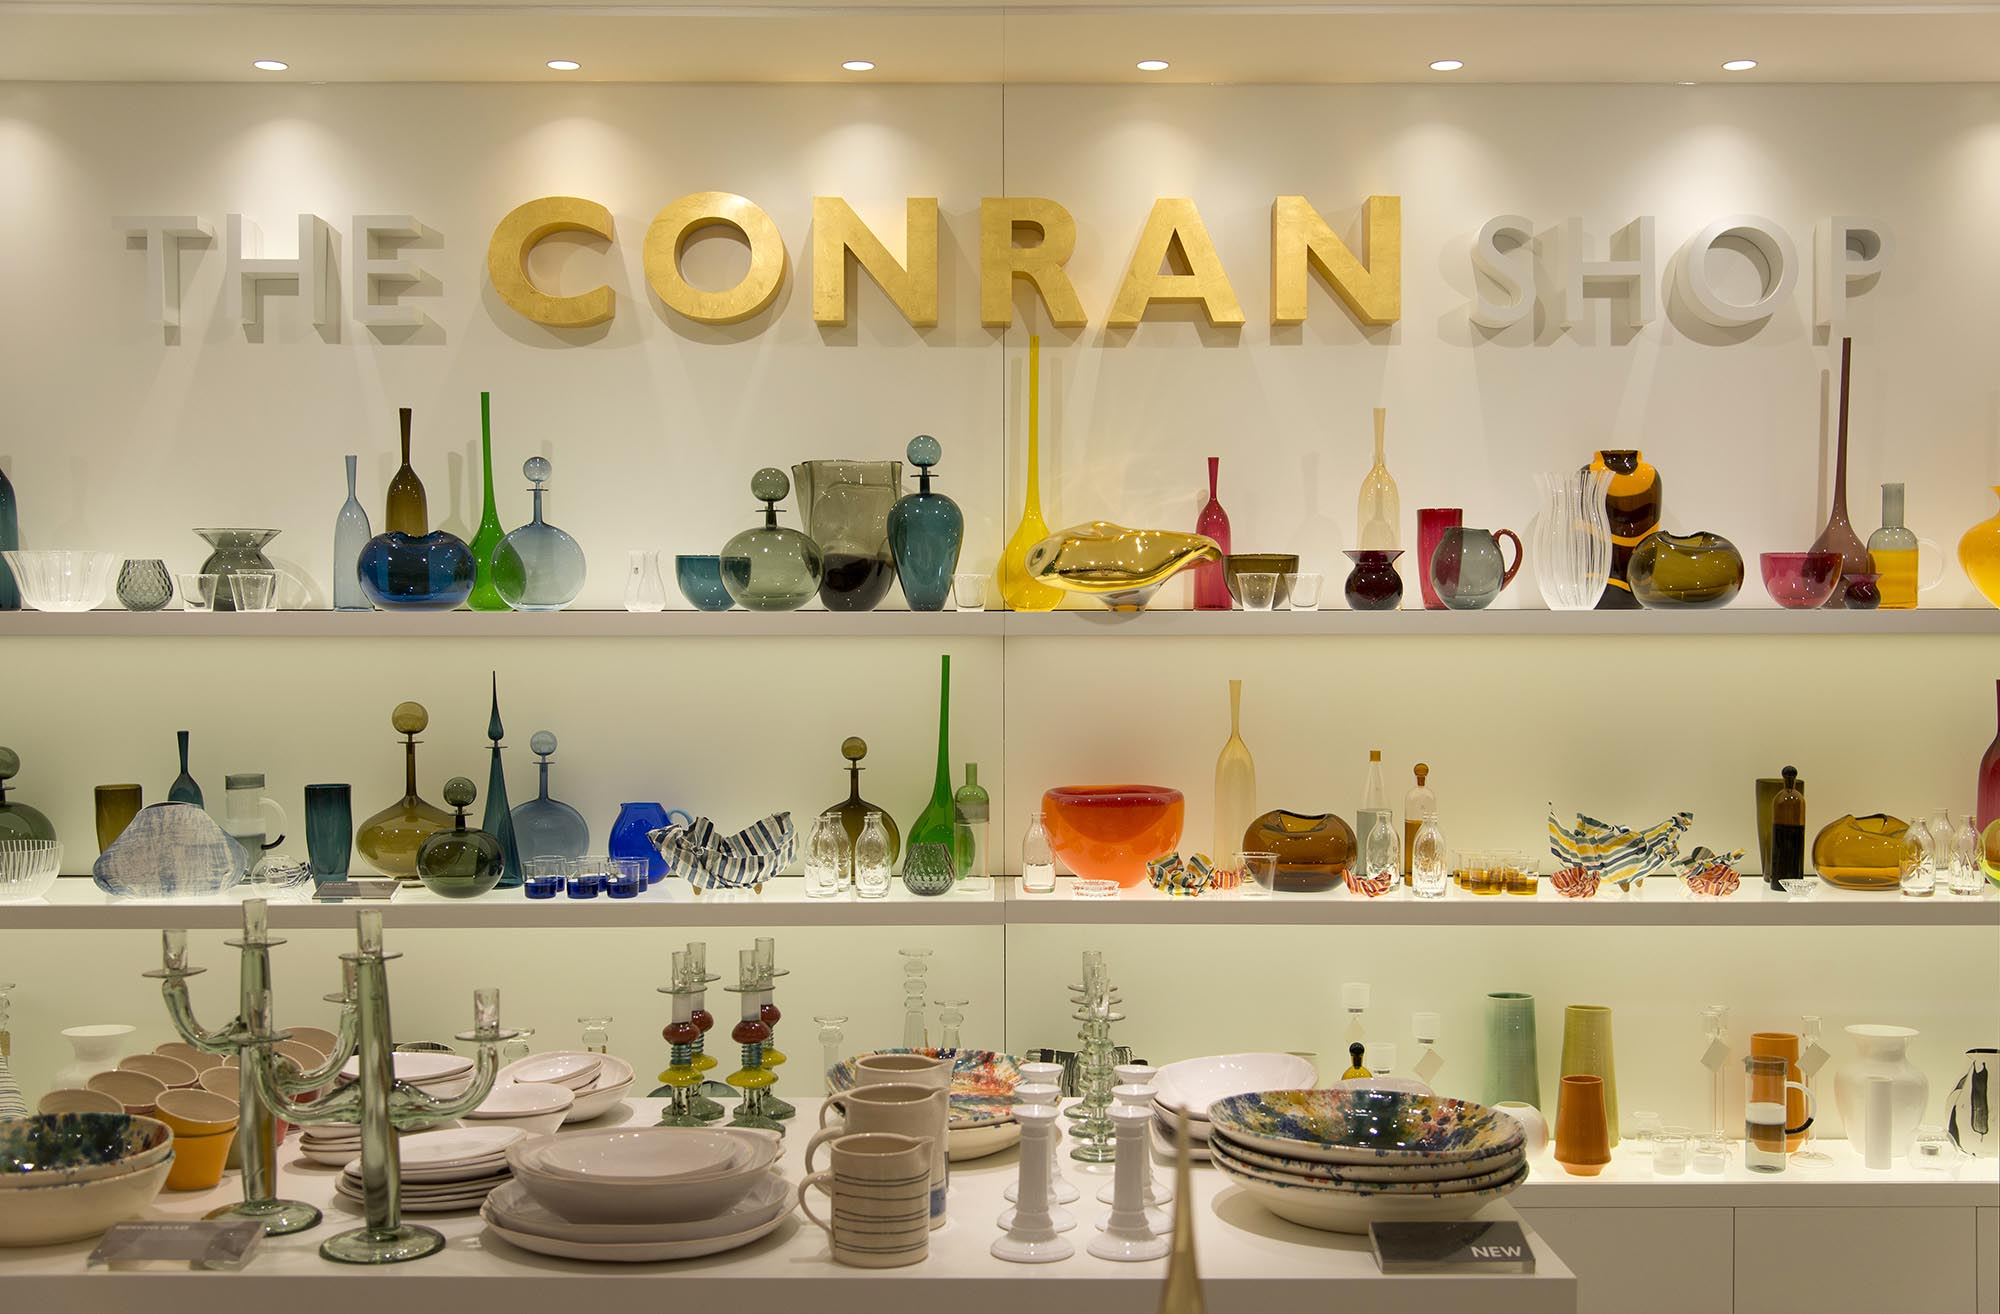 The Conran Shop, Selfridges, London gold leaf logo